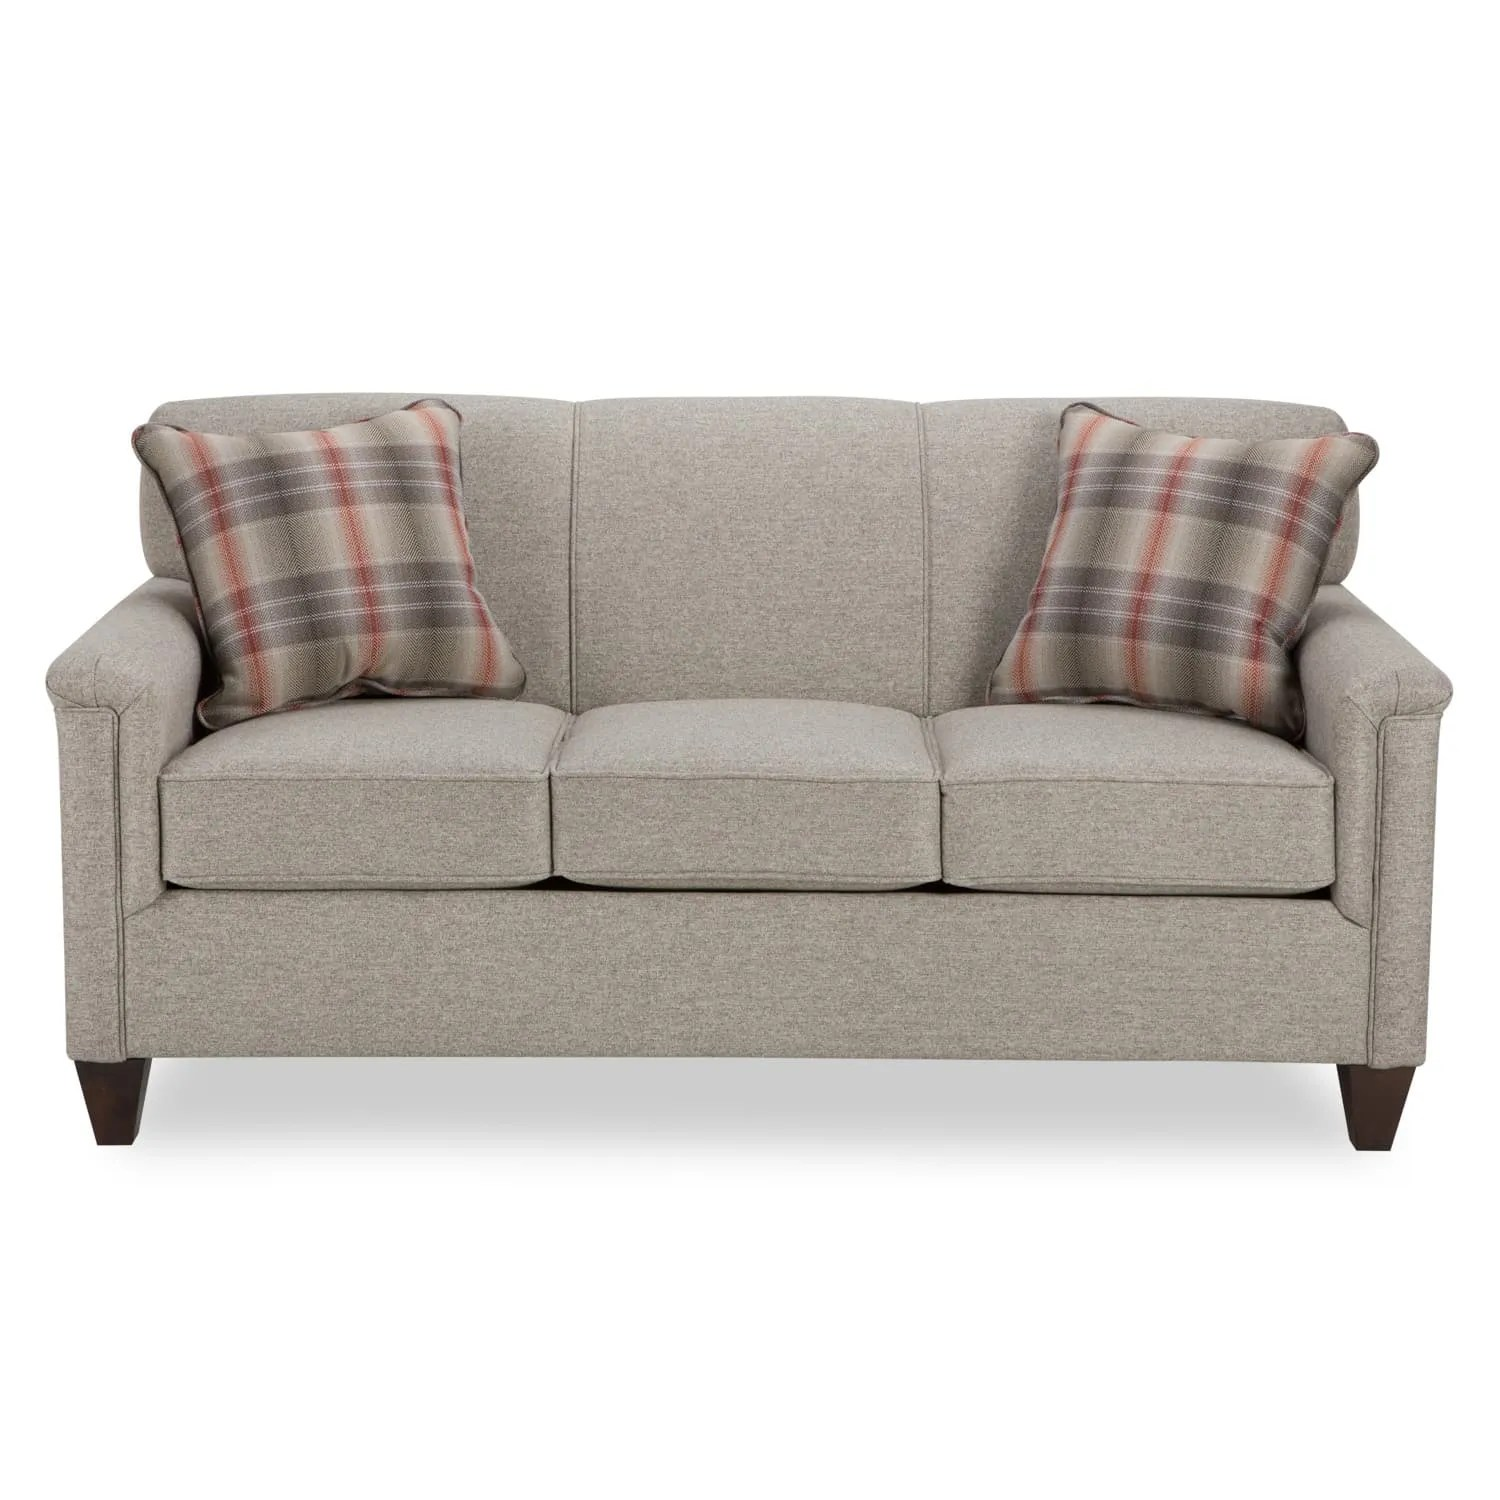 Sofa Express Locations Living Room Sofas Furniture Sales From Wg R In Wisconsin